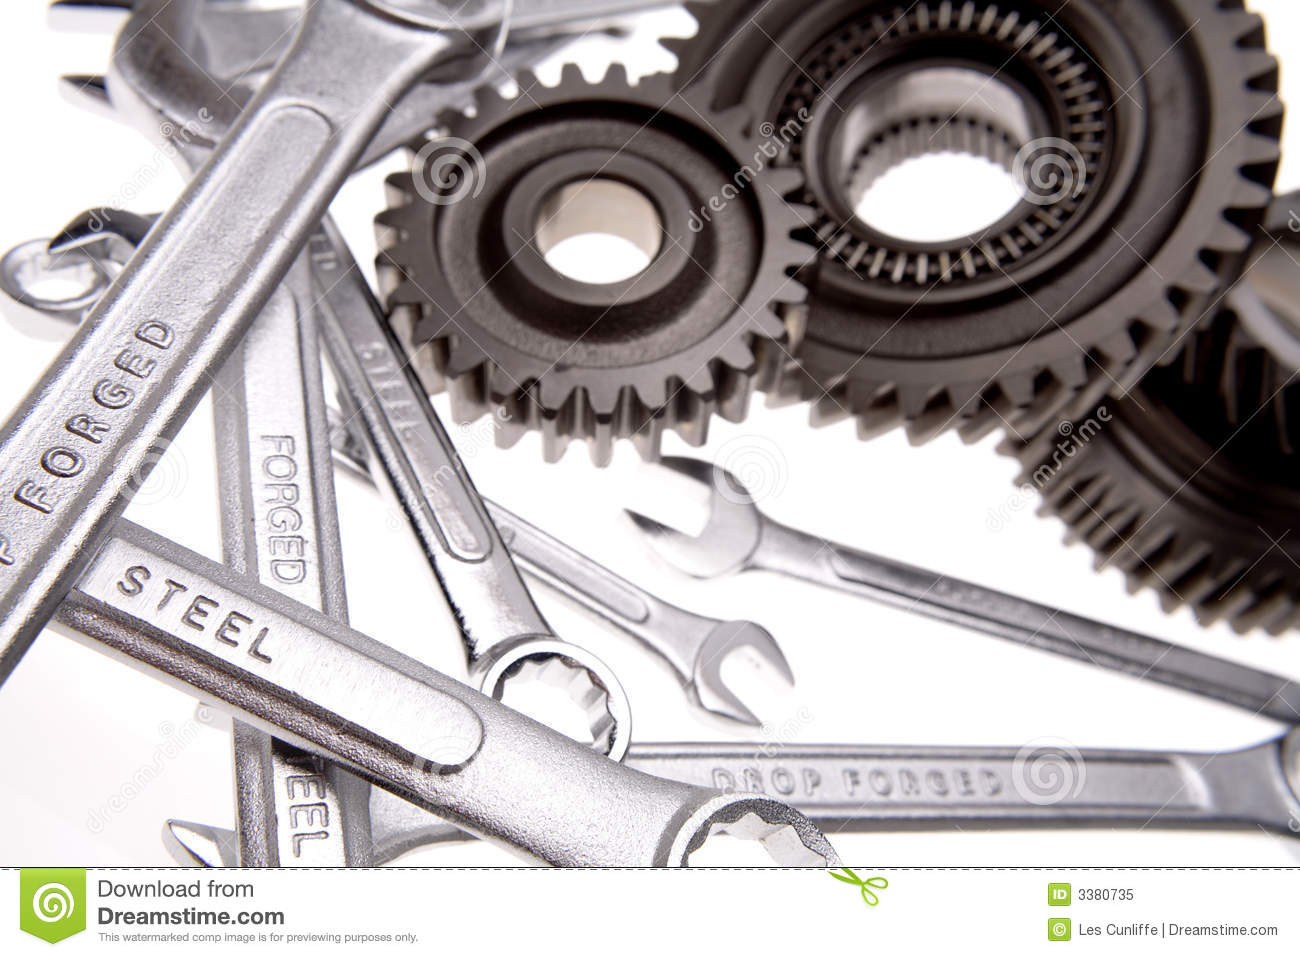 Spanners & cogs